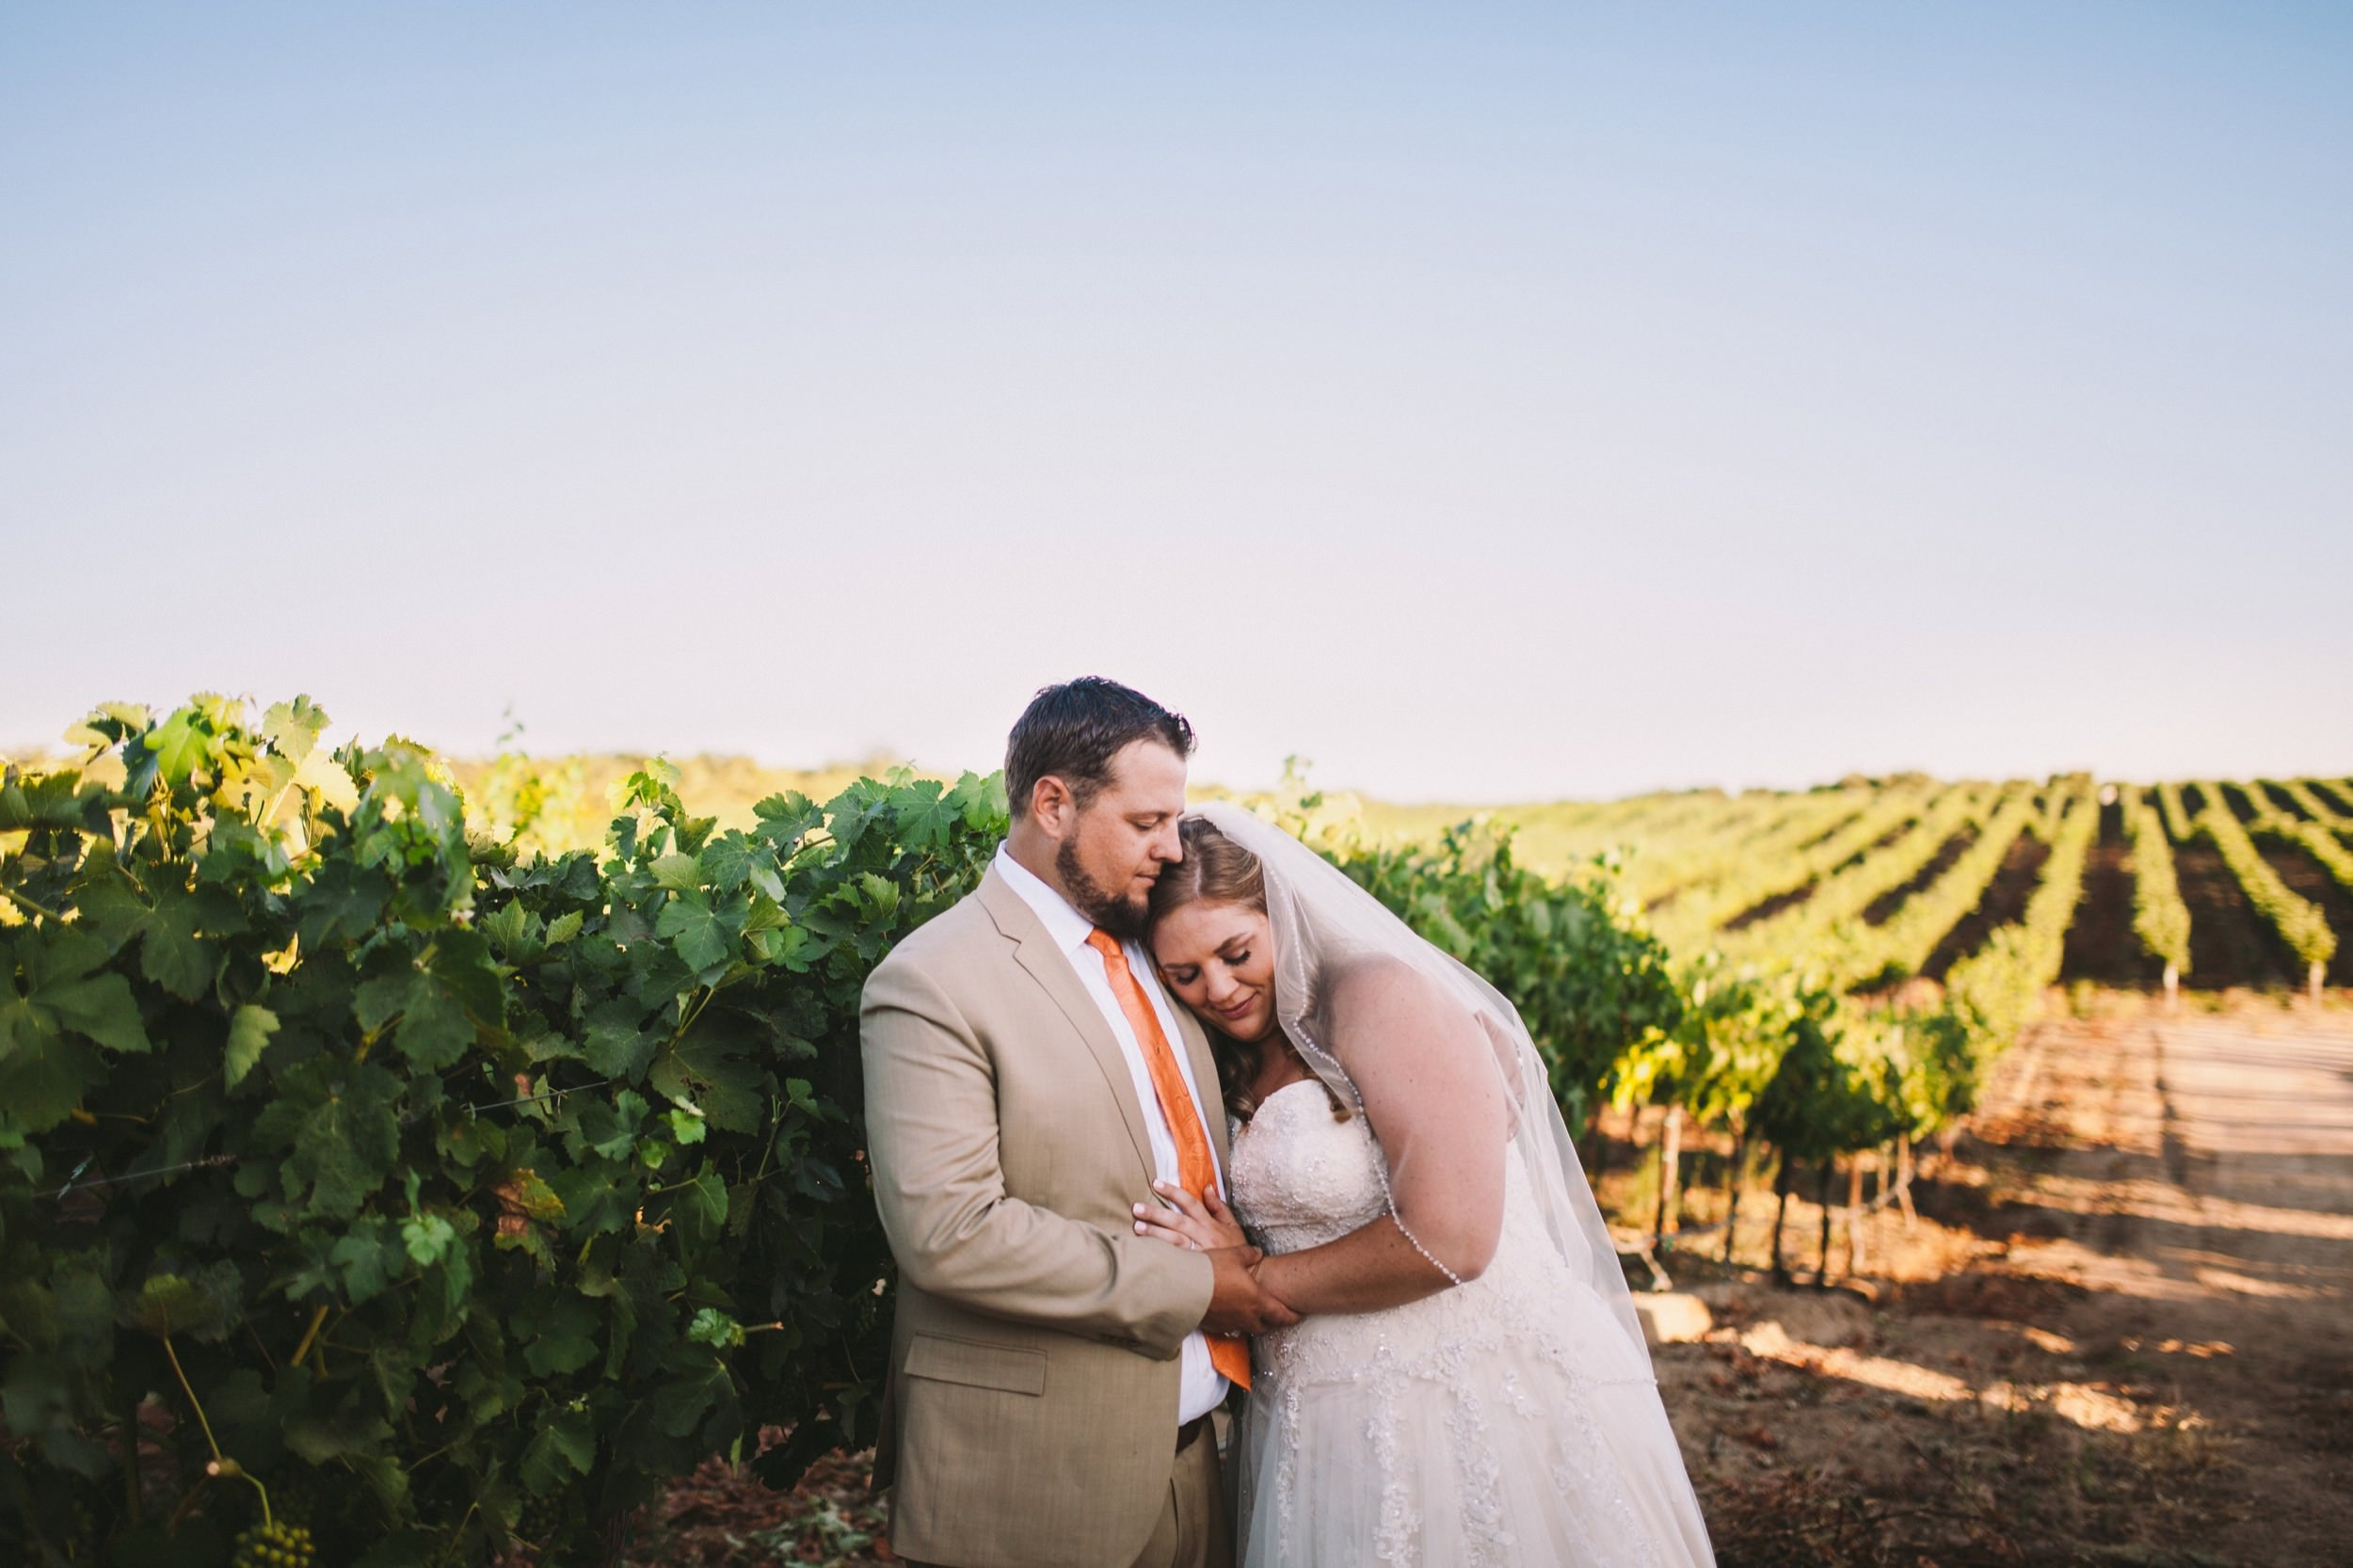 Toca Madera Winery Wedding 641.jpg